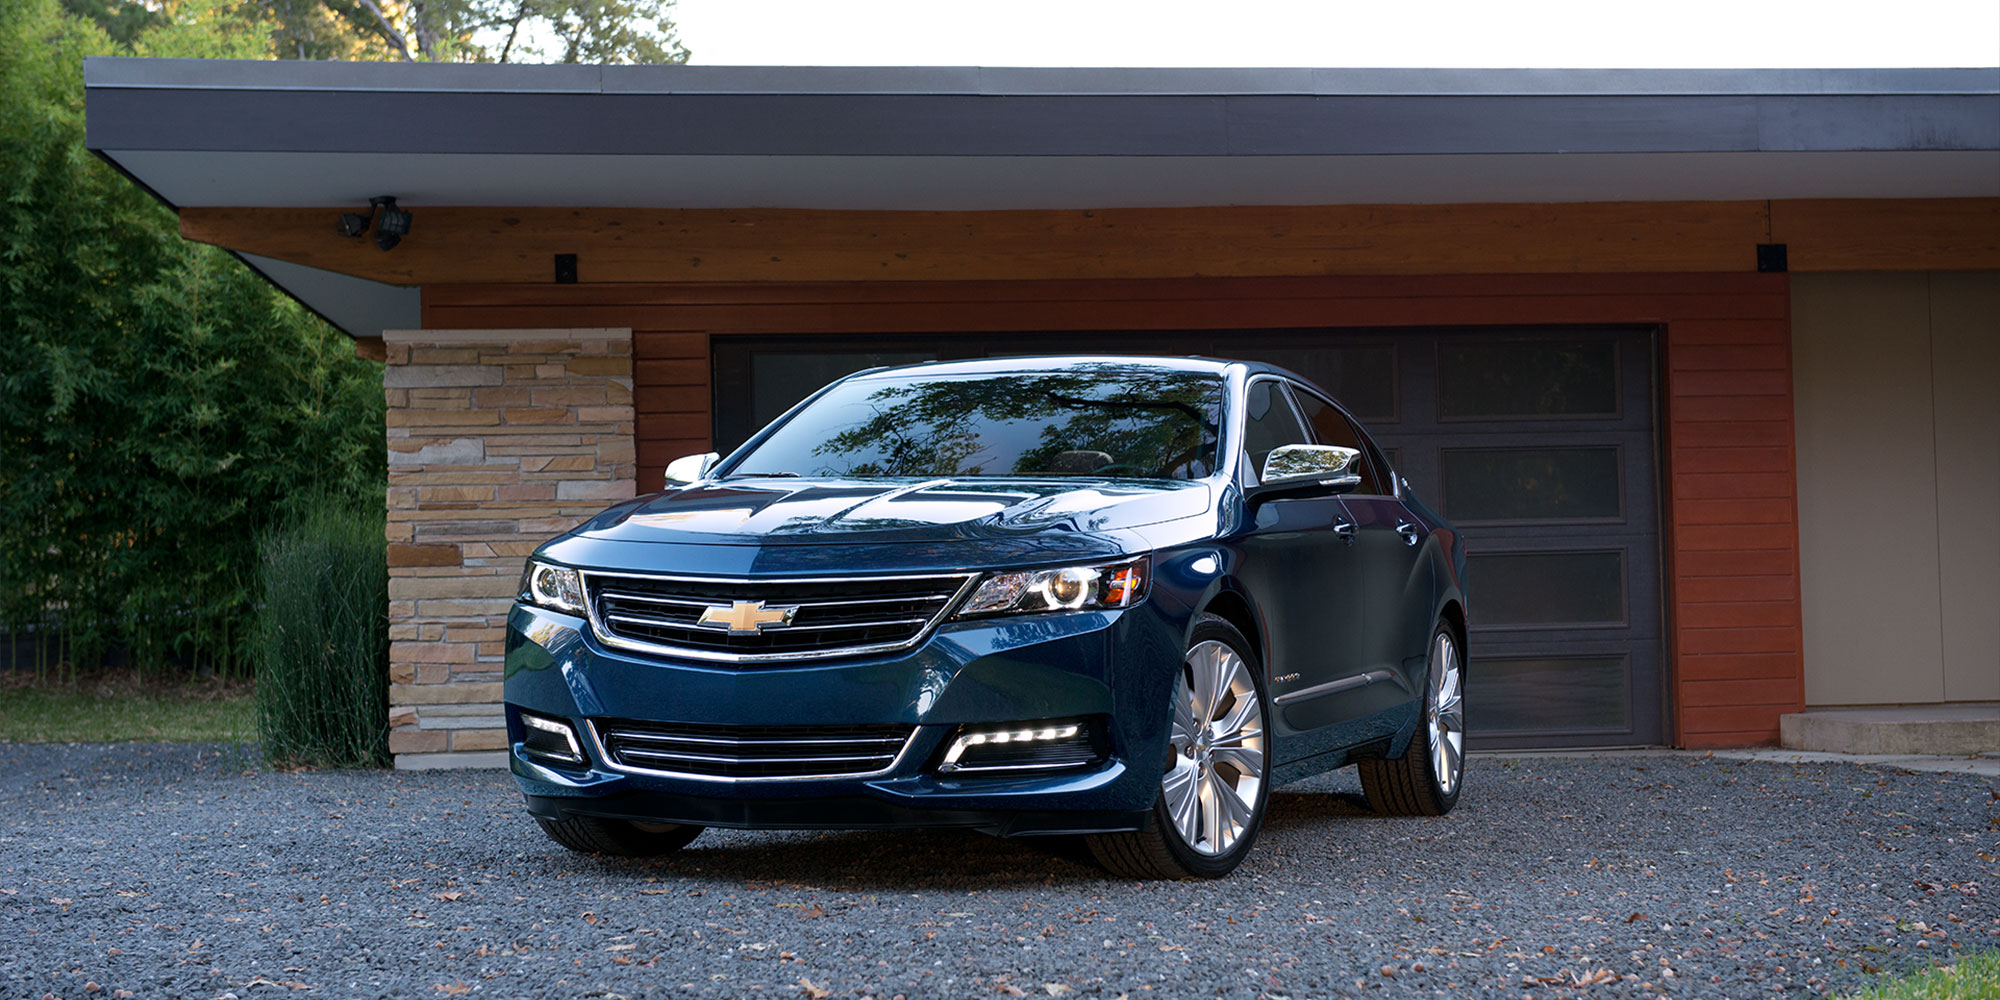 hight resolution of 2018 chevrolet impala in charlottesville va